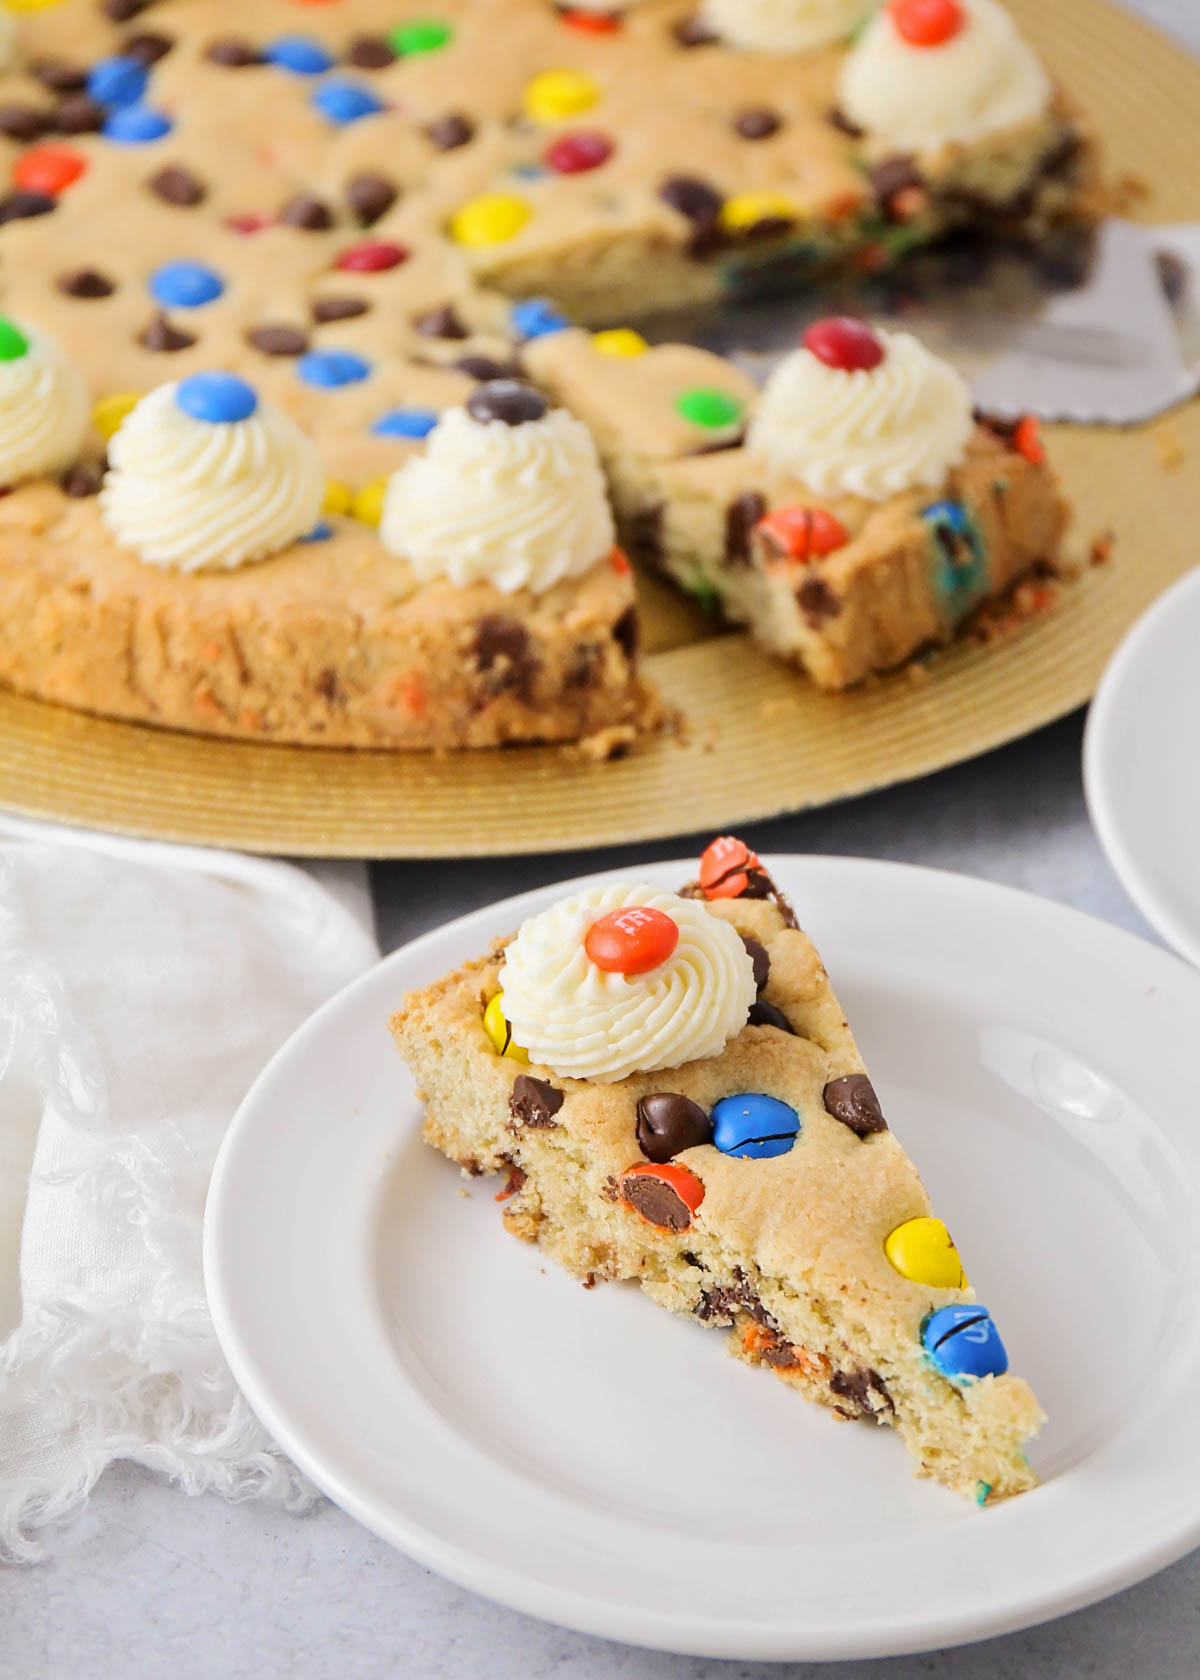 A slice of homemade cookie cake on a white plate